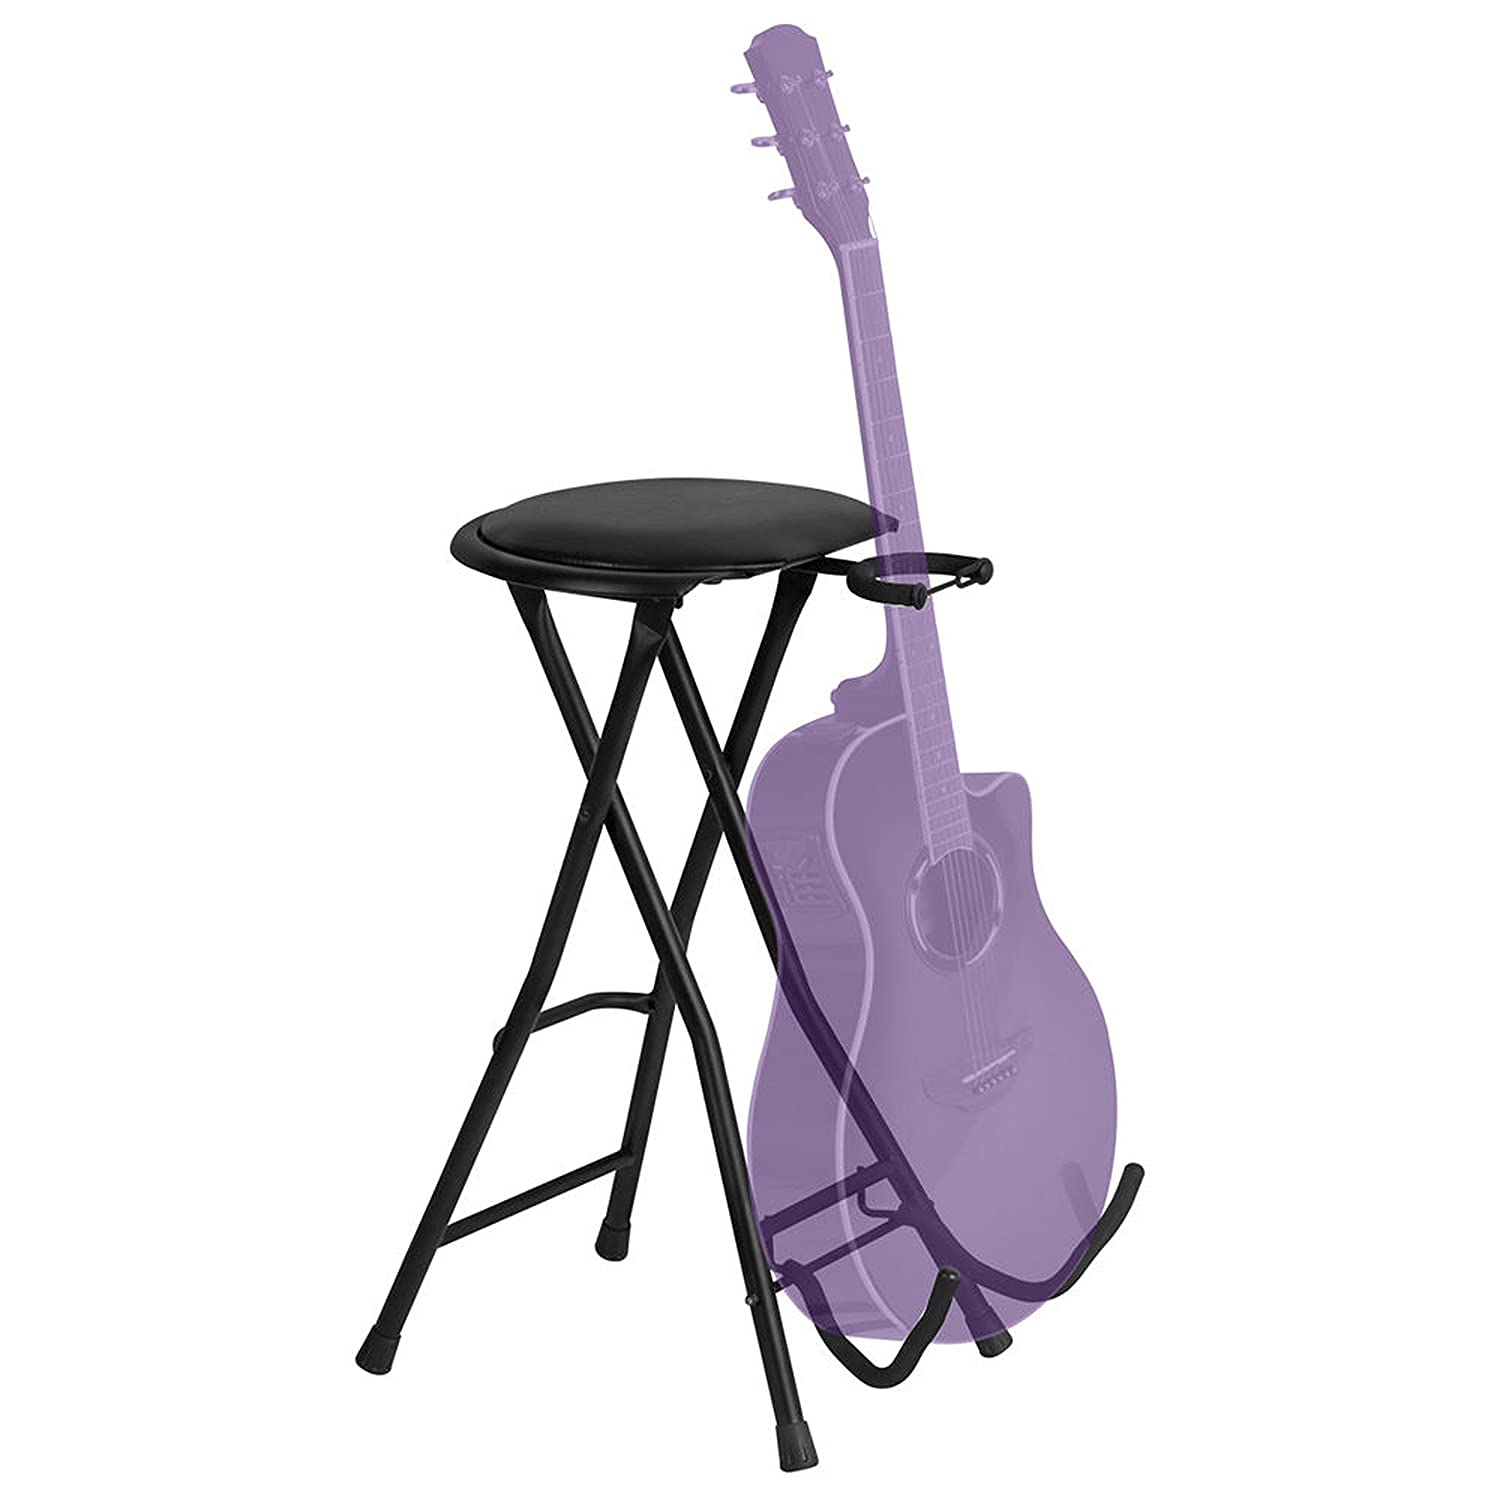 On-Stage DT7500 Guitarist Stool with Footrest On Stage